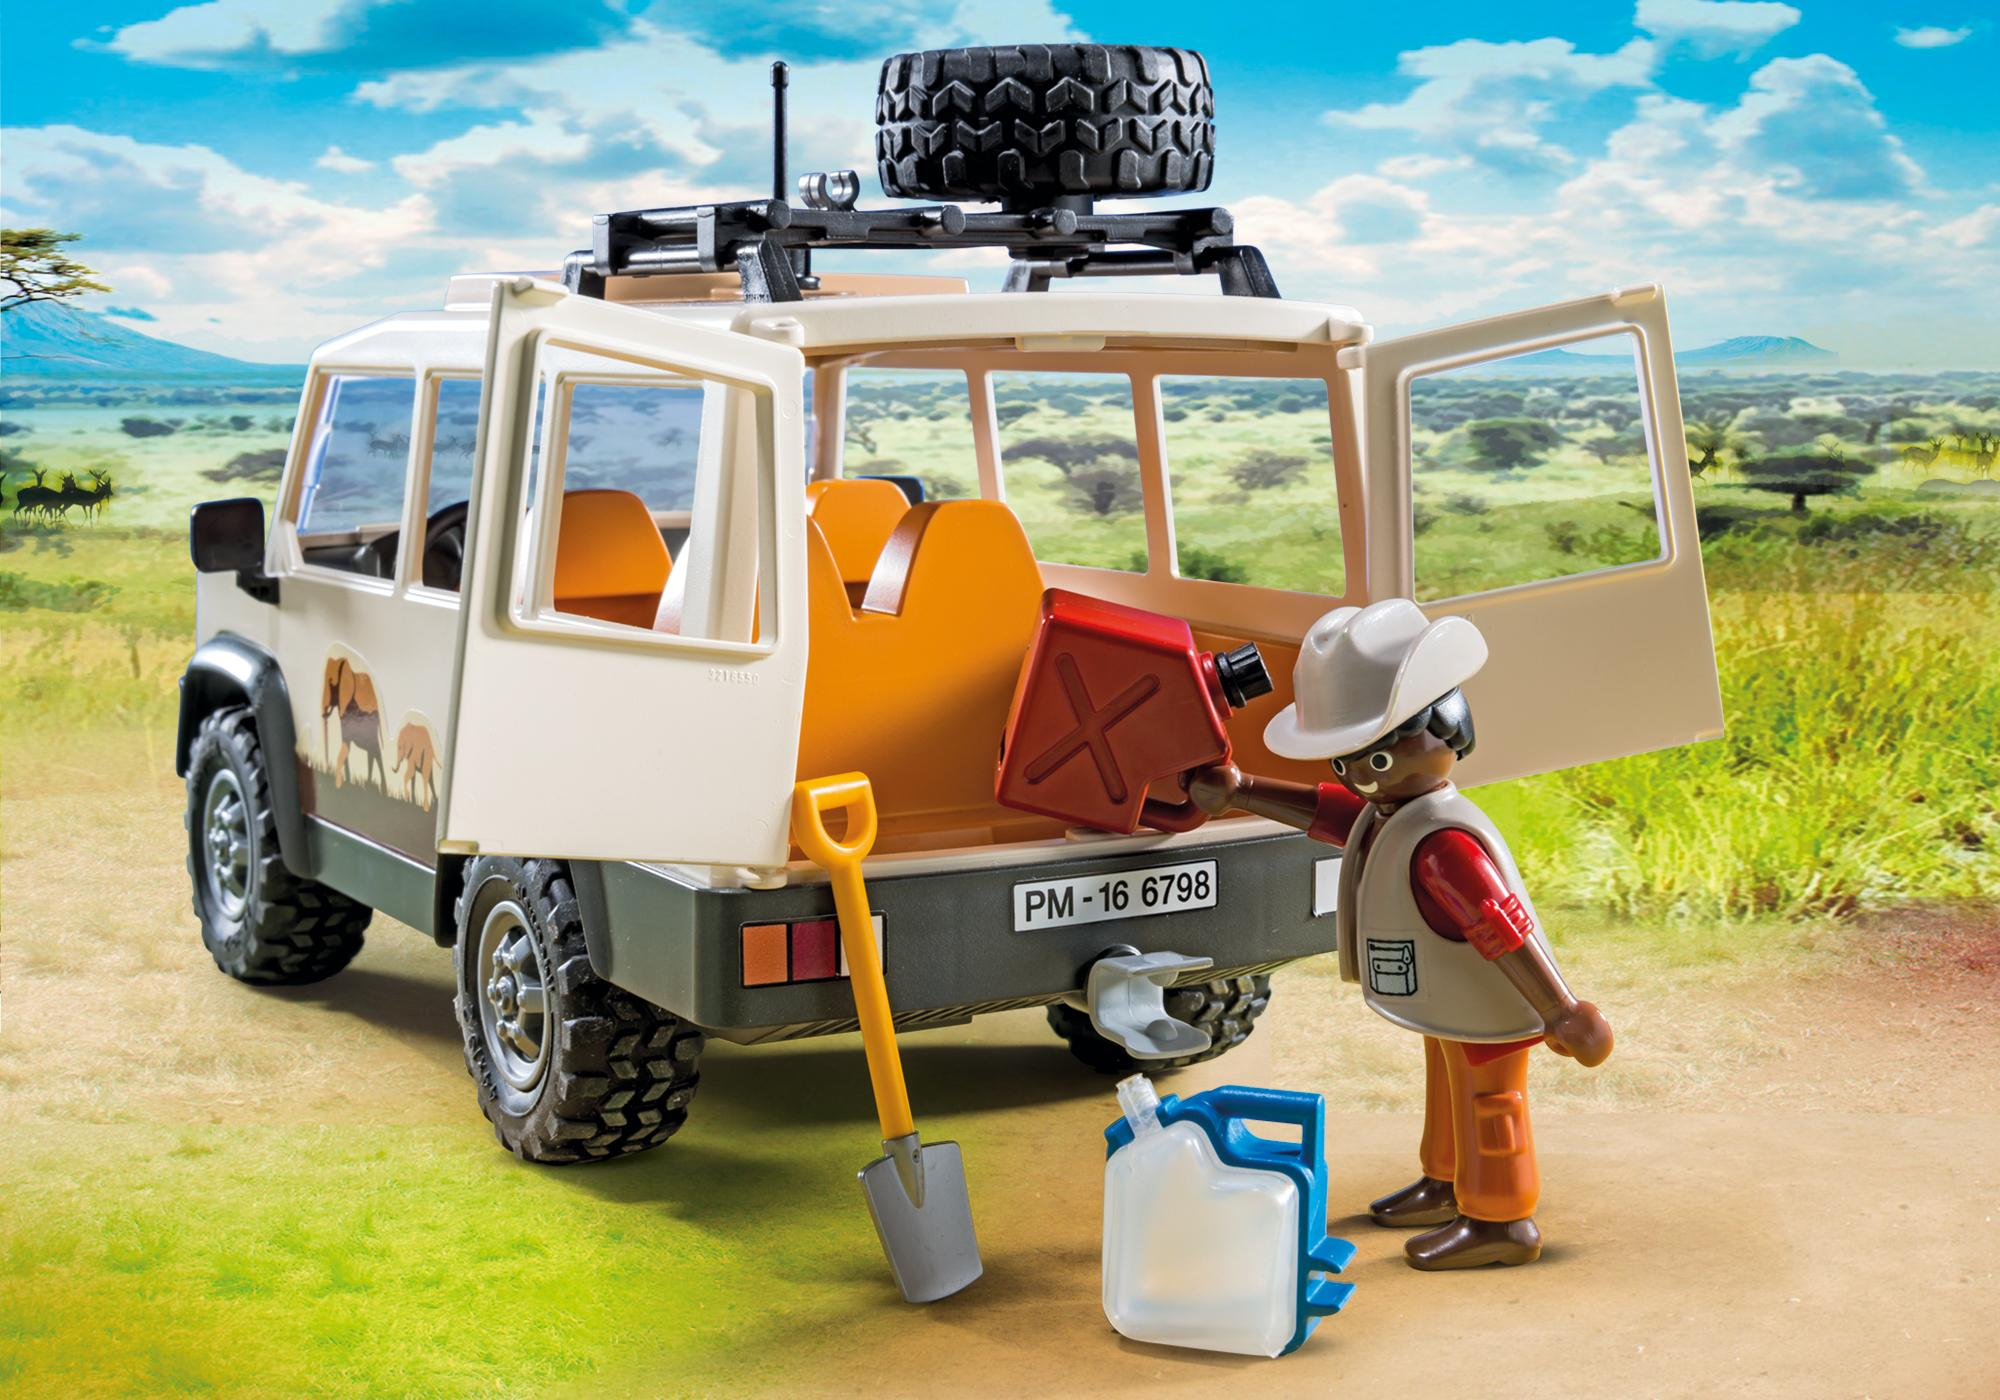 http://media.playmobil.com/i/playmobil/6798_product_extra2